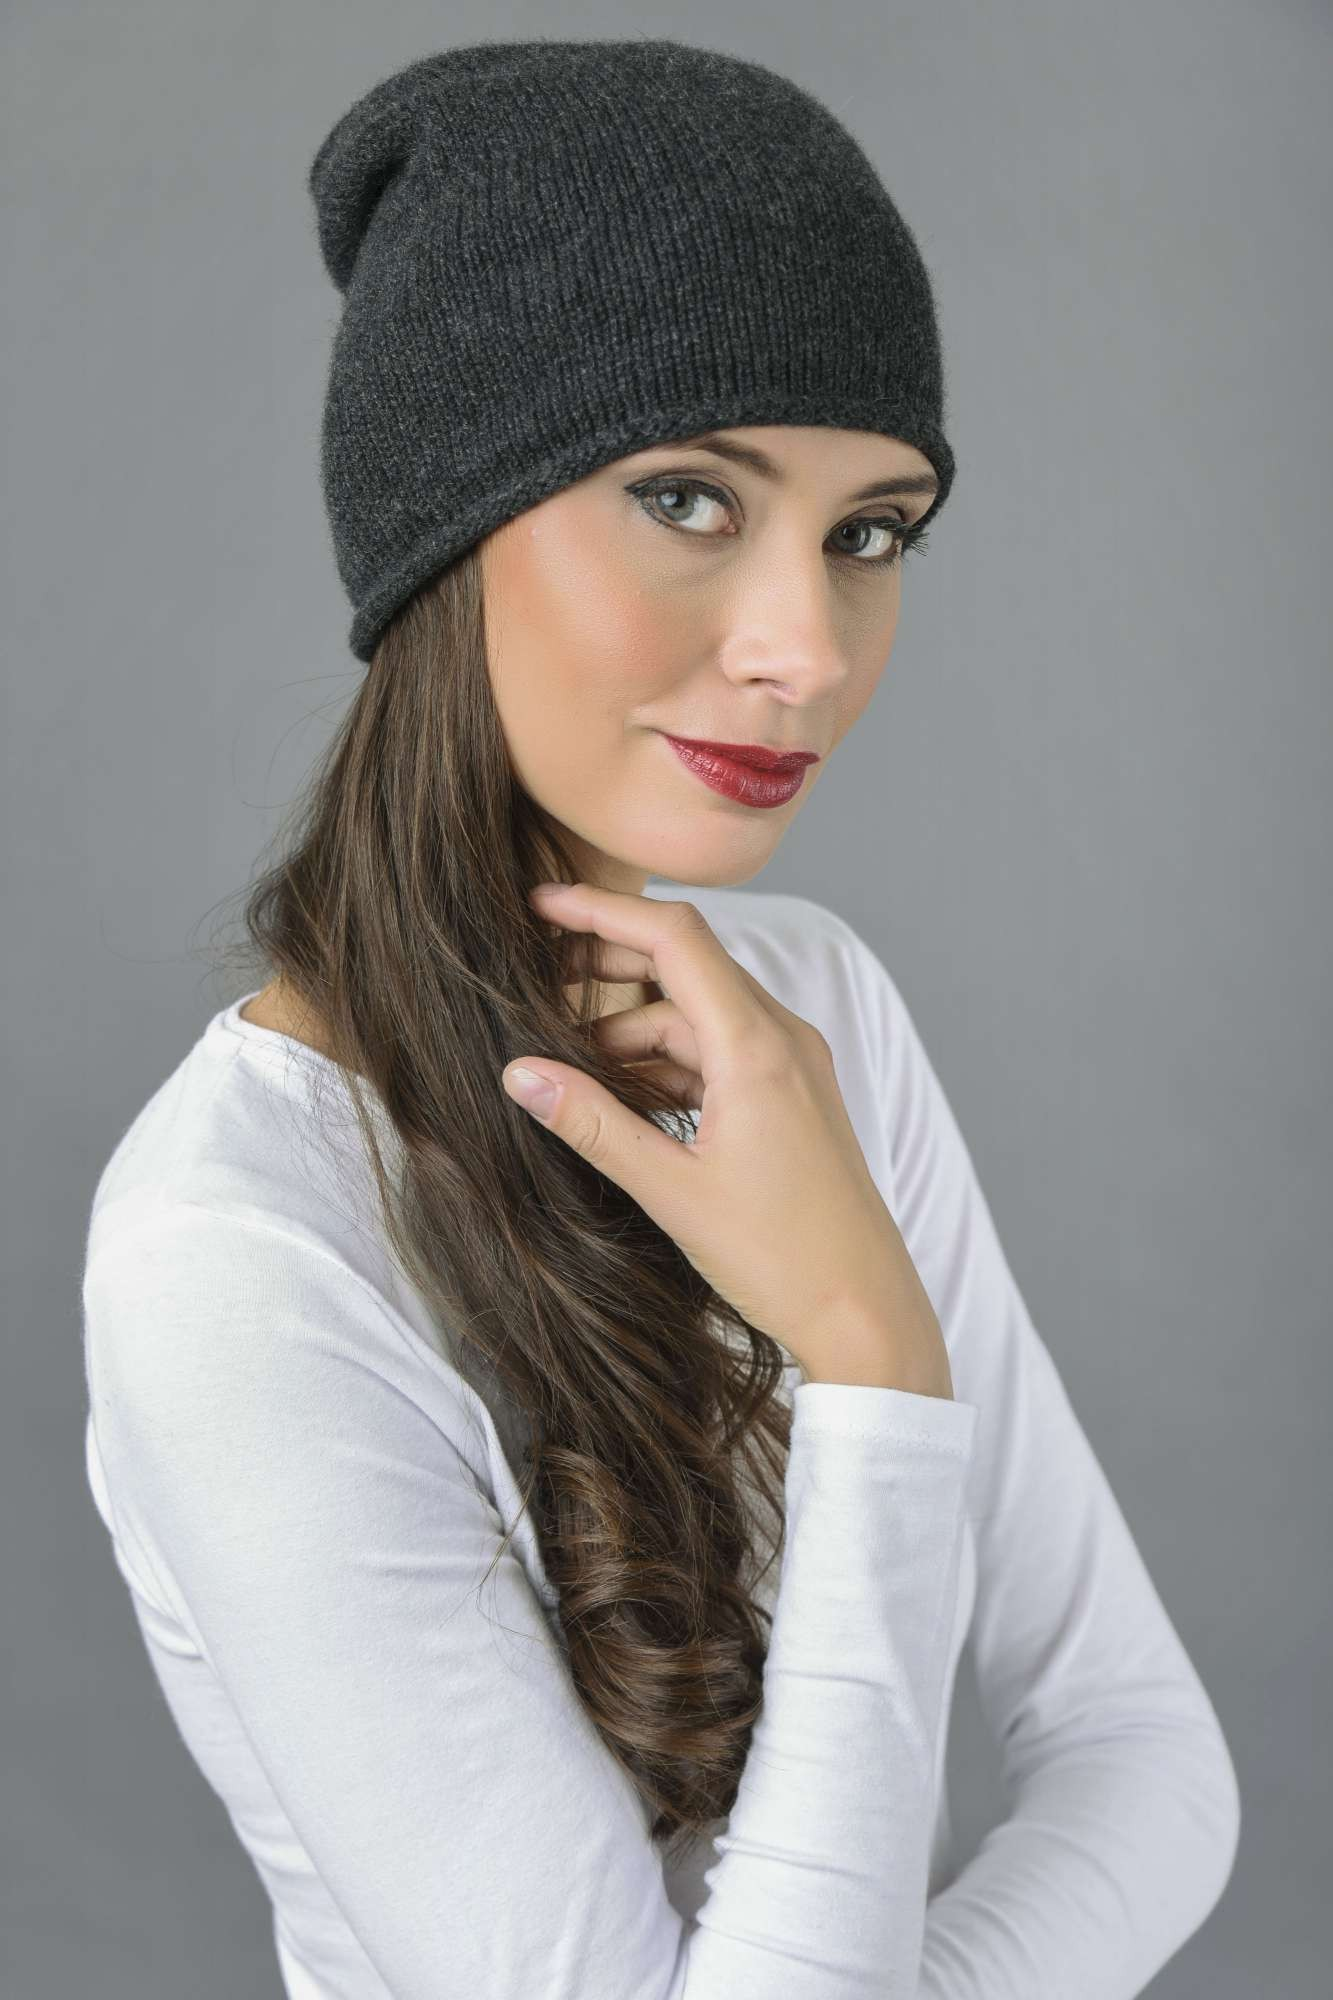 Pure Cashmere Plain Knitted Slouchy Beanie Hat in Charcoal Grey ... cb5673645a9